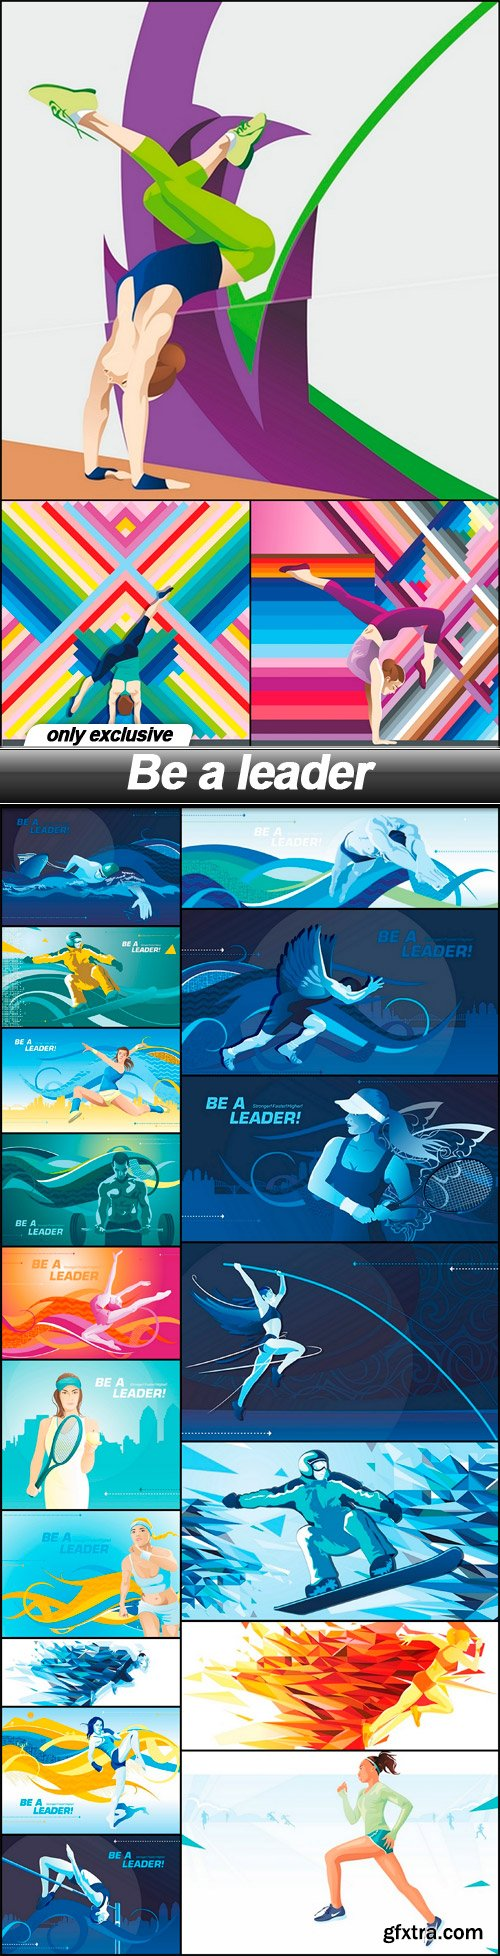 Be a leader - 20 EPS